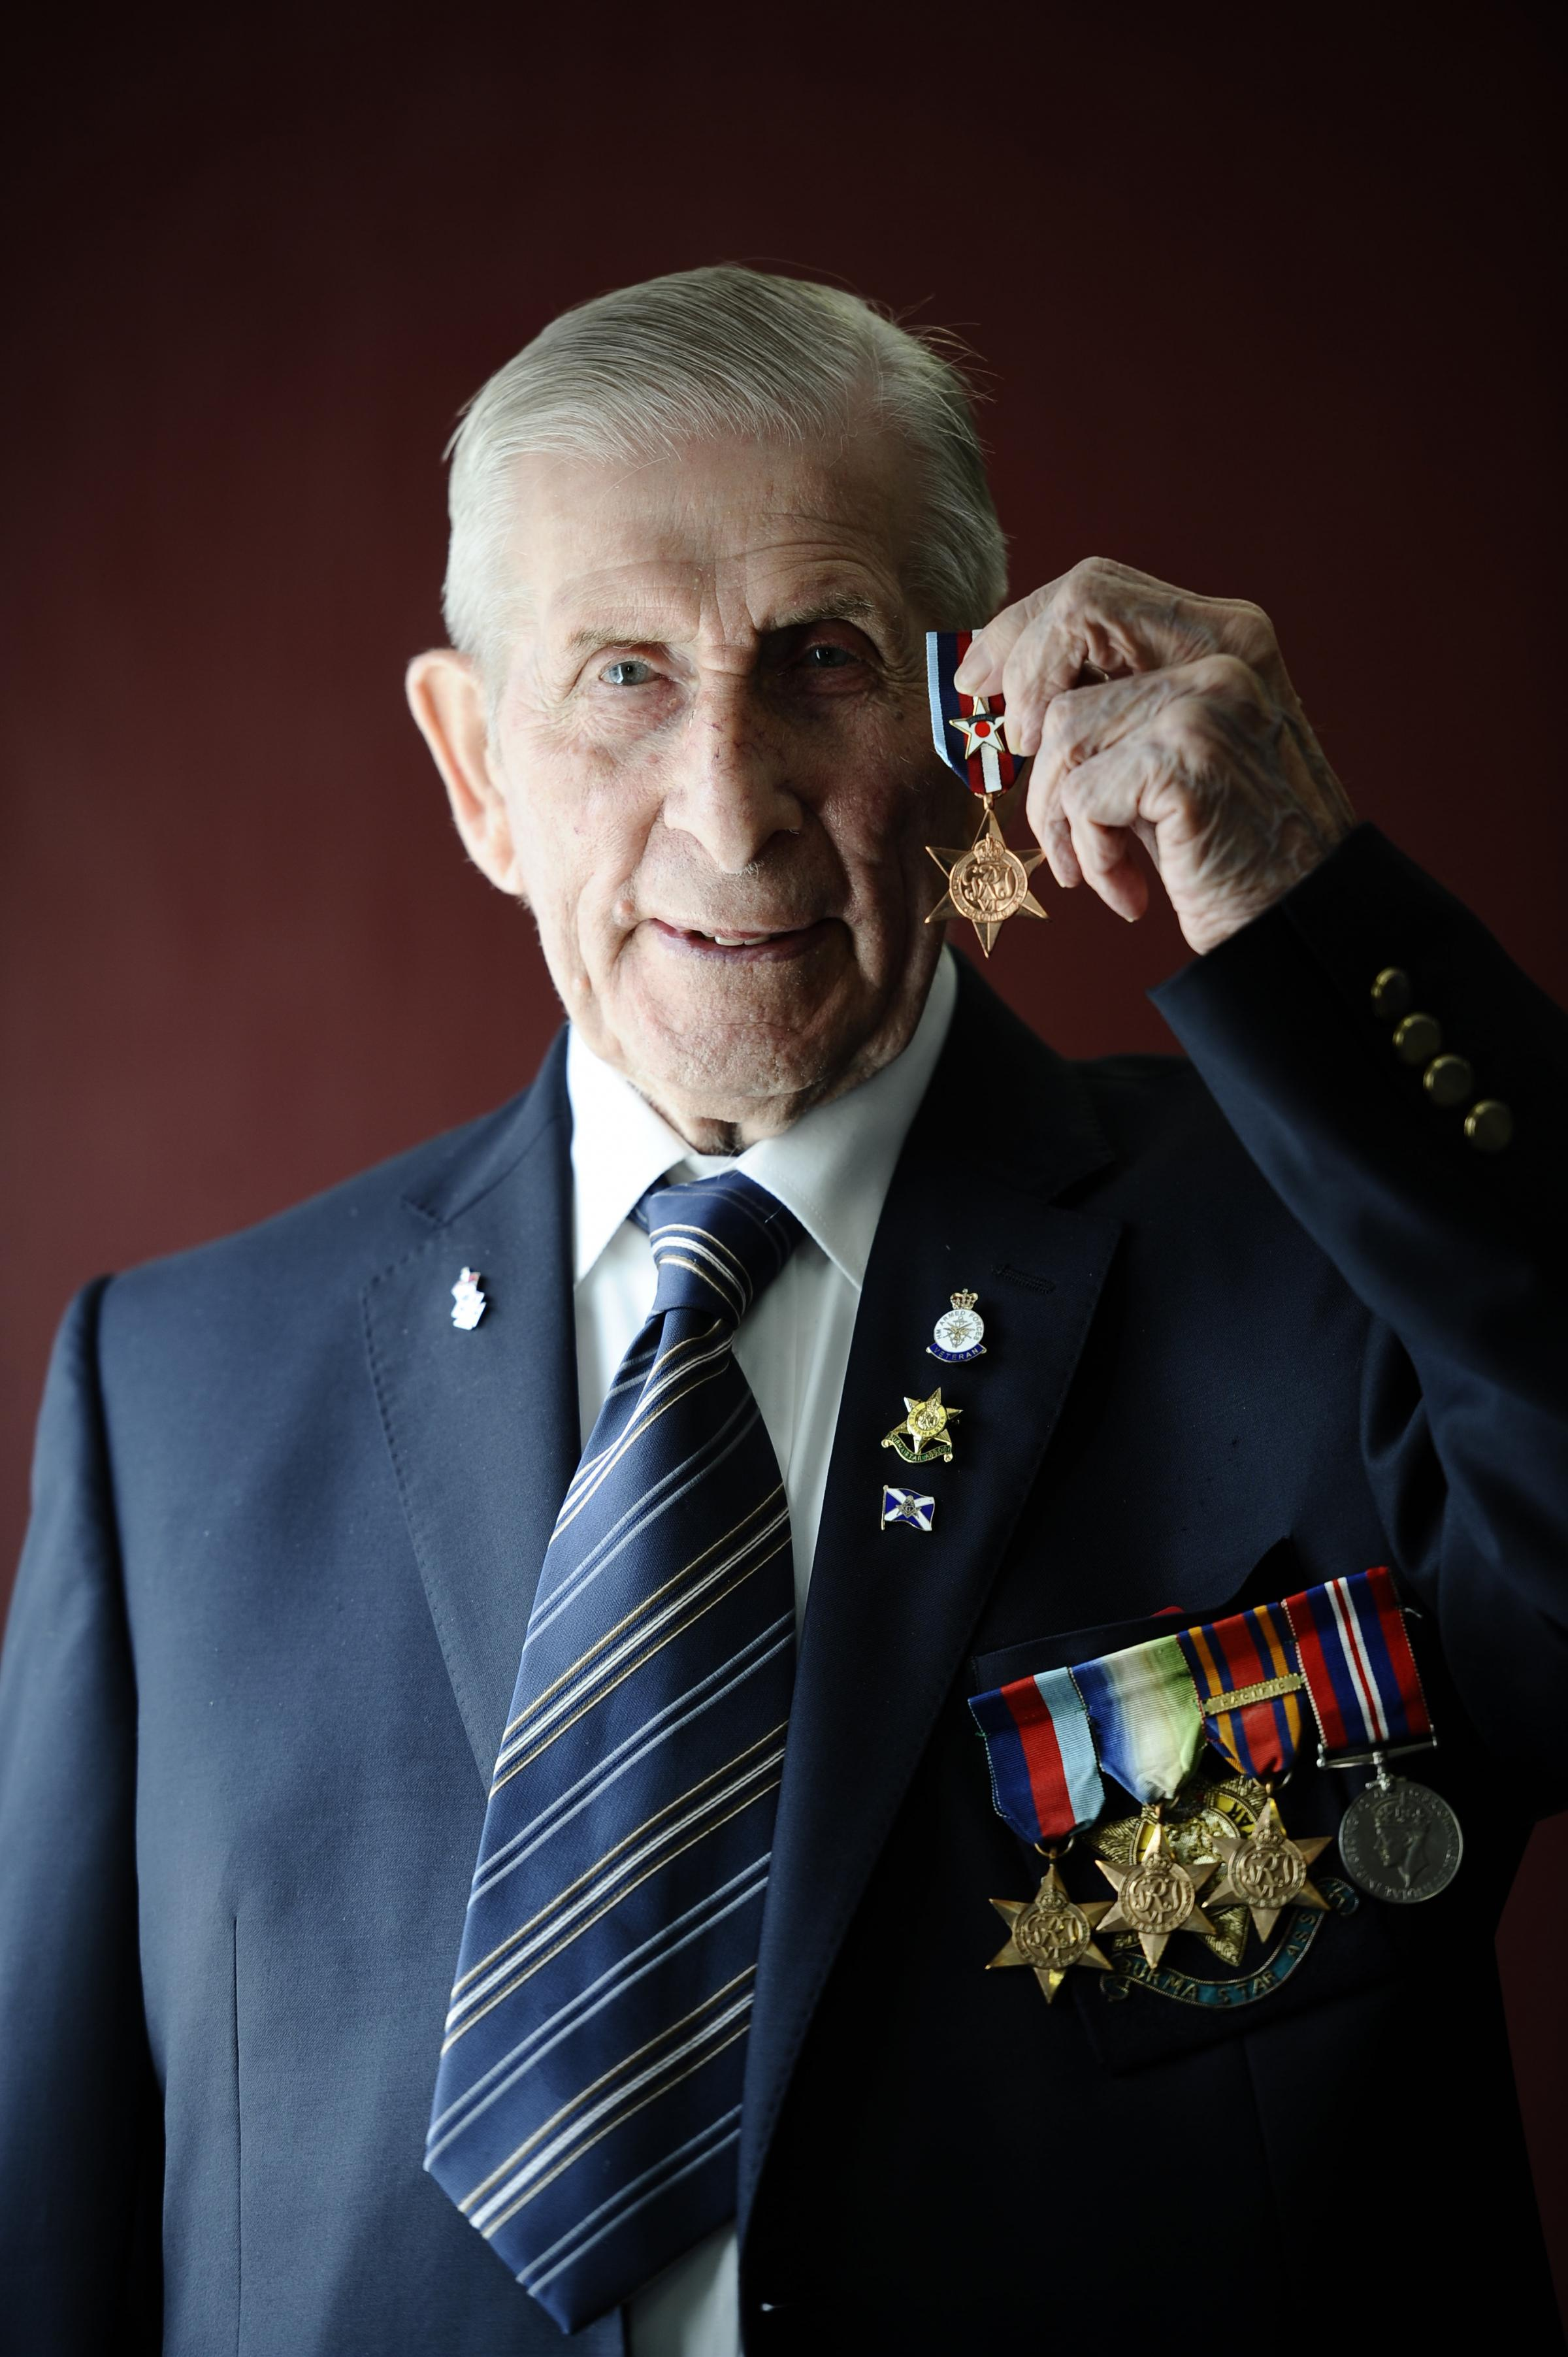 Edwin Leadbetter with the Arctic Star medal he was awarded for his service on the perilous convoys